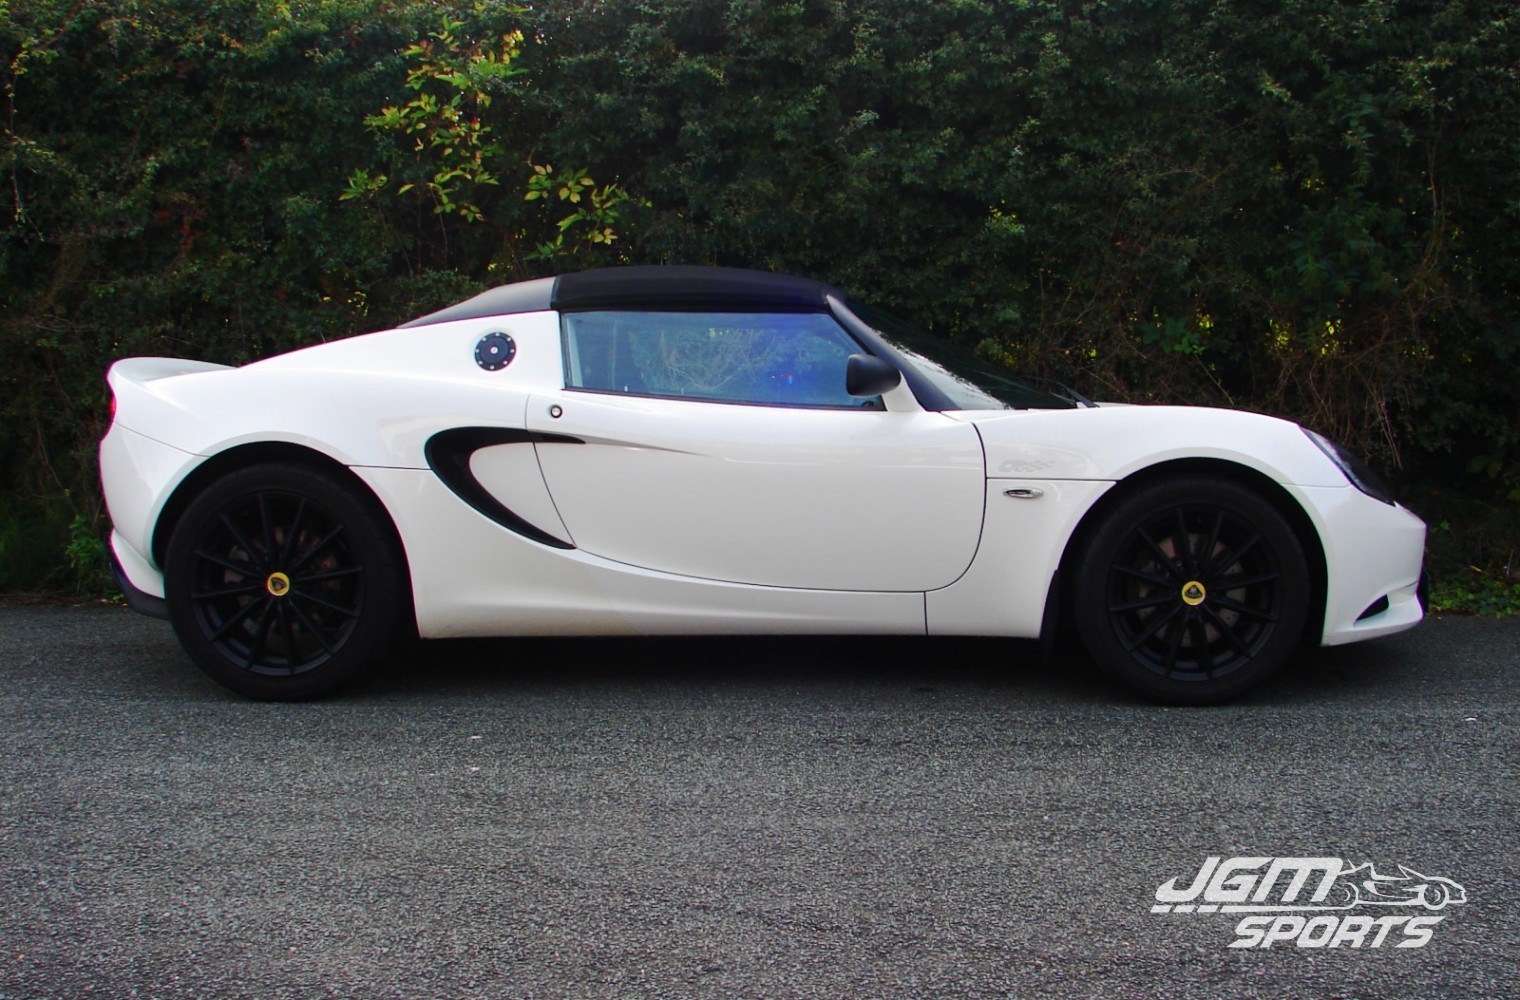 Cars for sale jgmsports sold 2011 s3 lotus elise club racer 16 aspen white vanachro Images